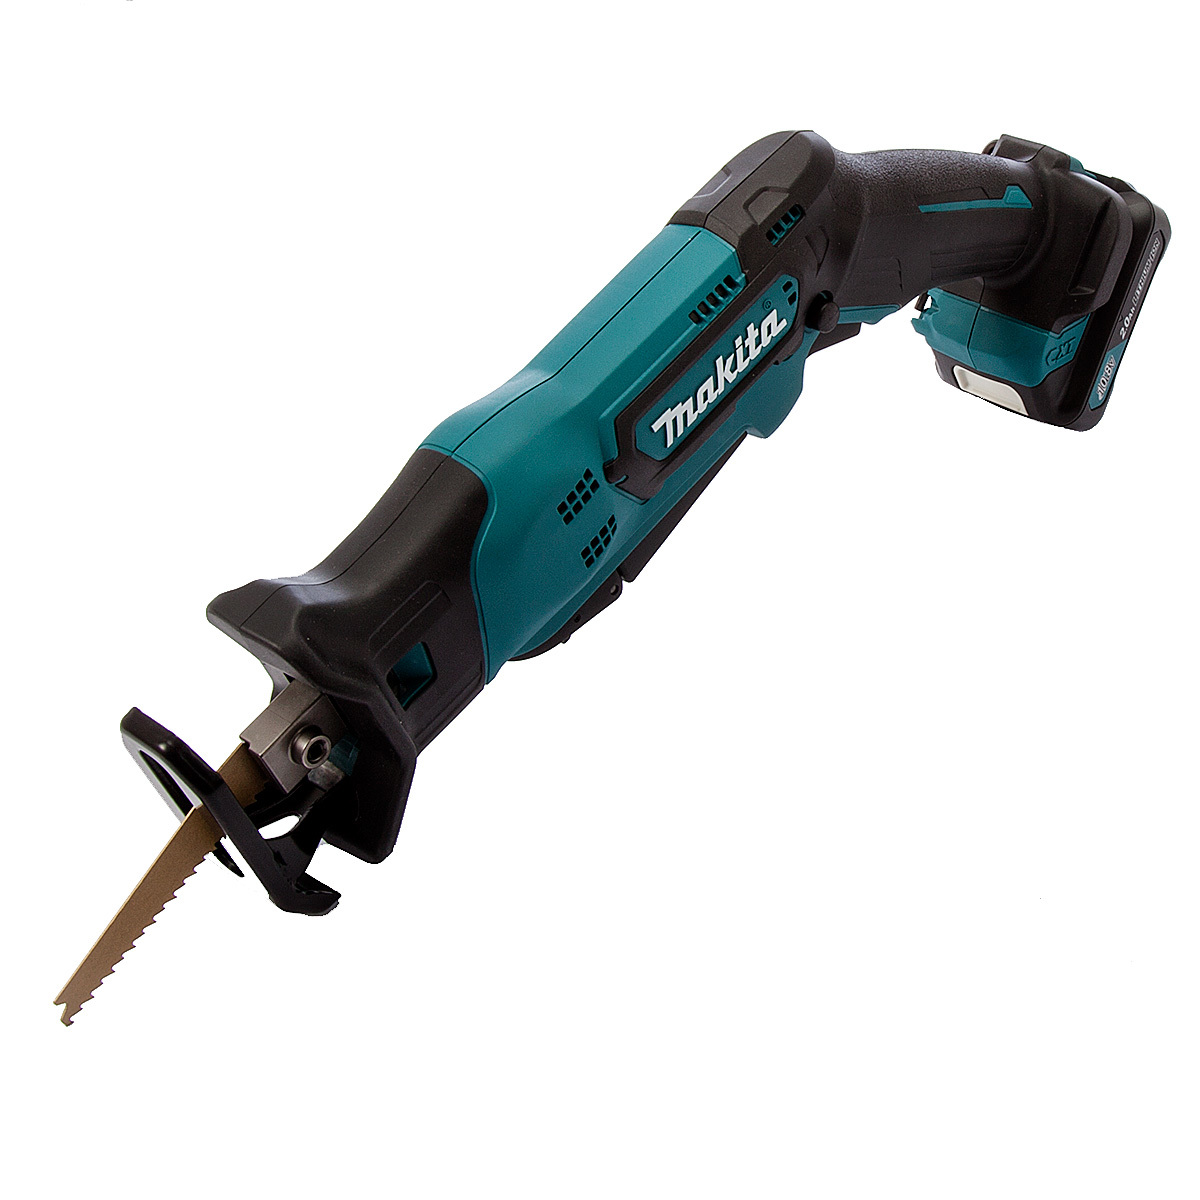 makita 12v max cordless reciprocating saw my power tools. Black Bedroom Furniture Sets. Home Design Ideas